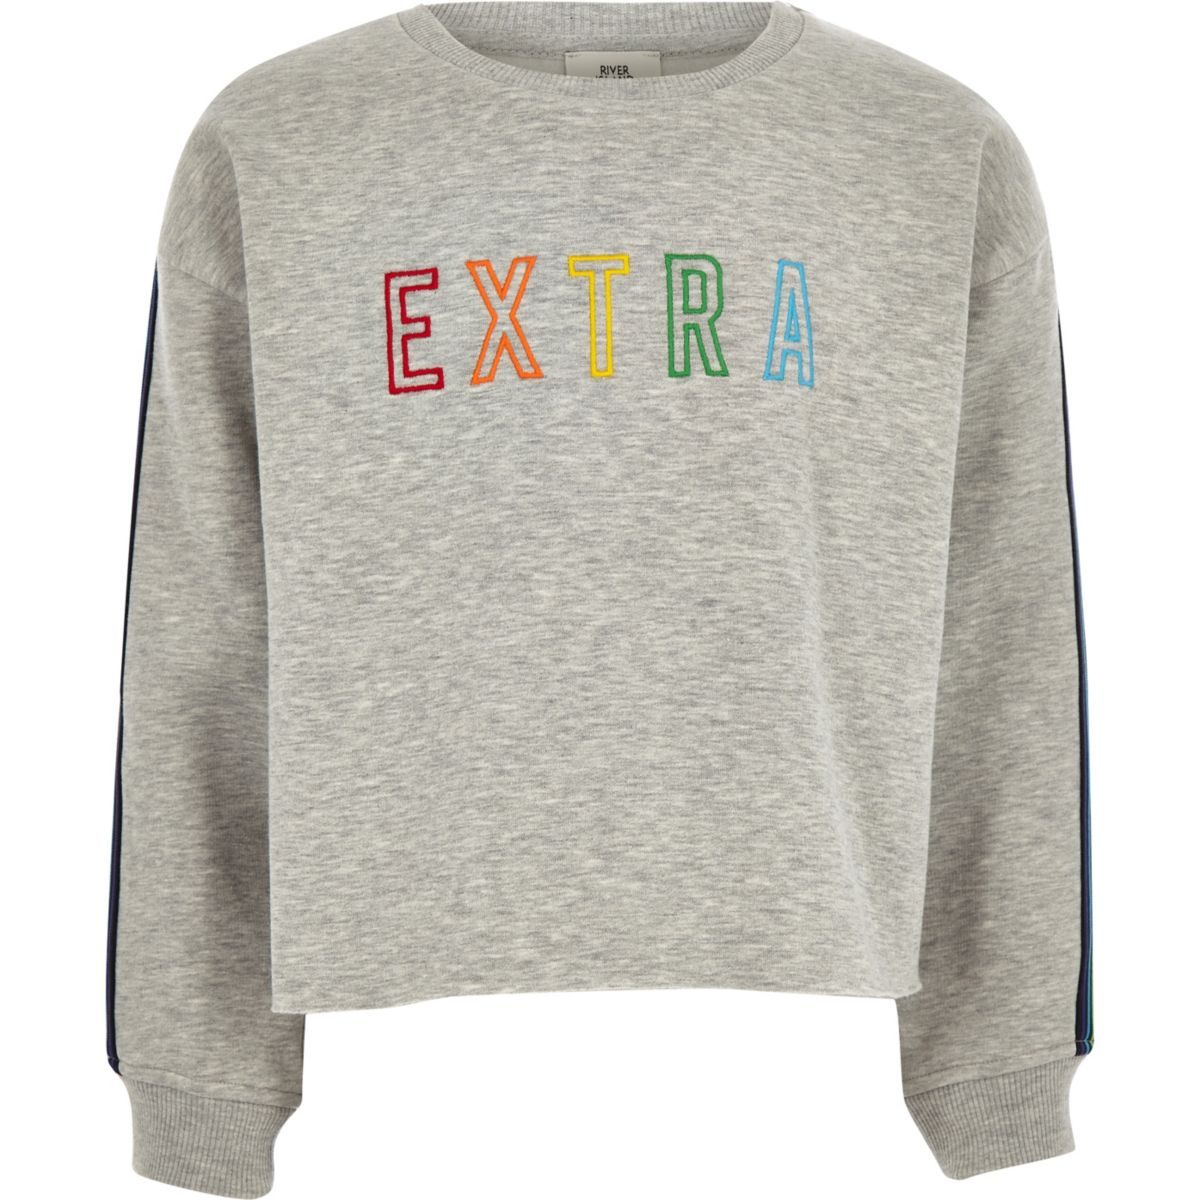 Girls light grey 'Extra' taped cropped jumper